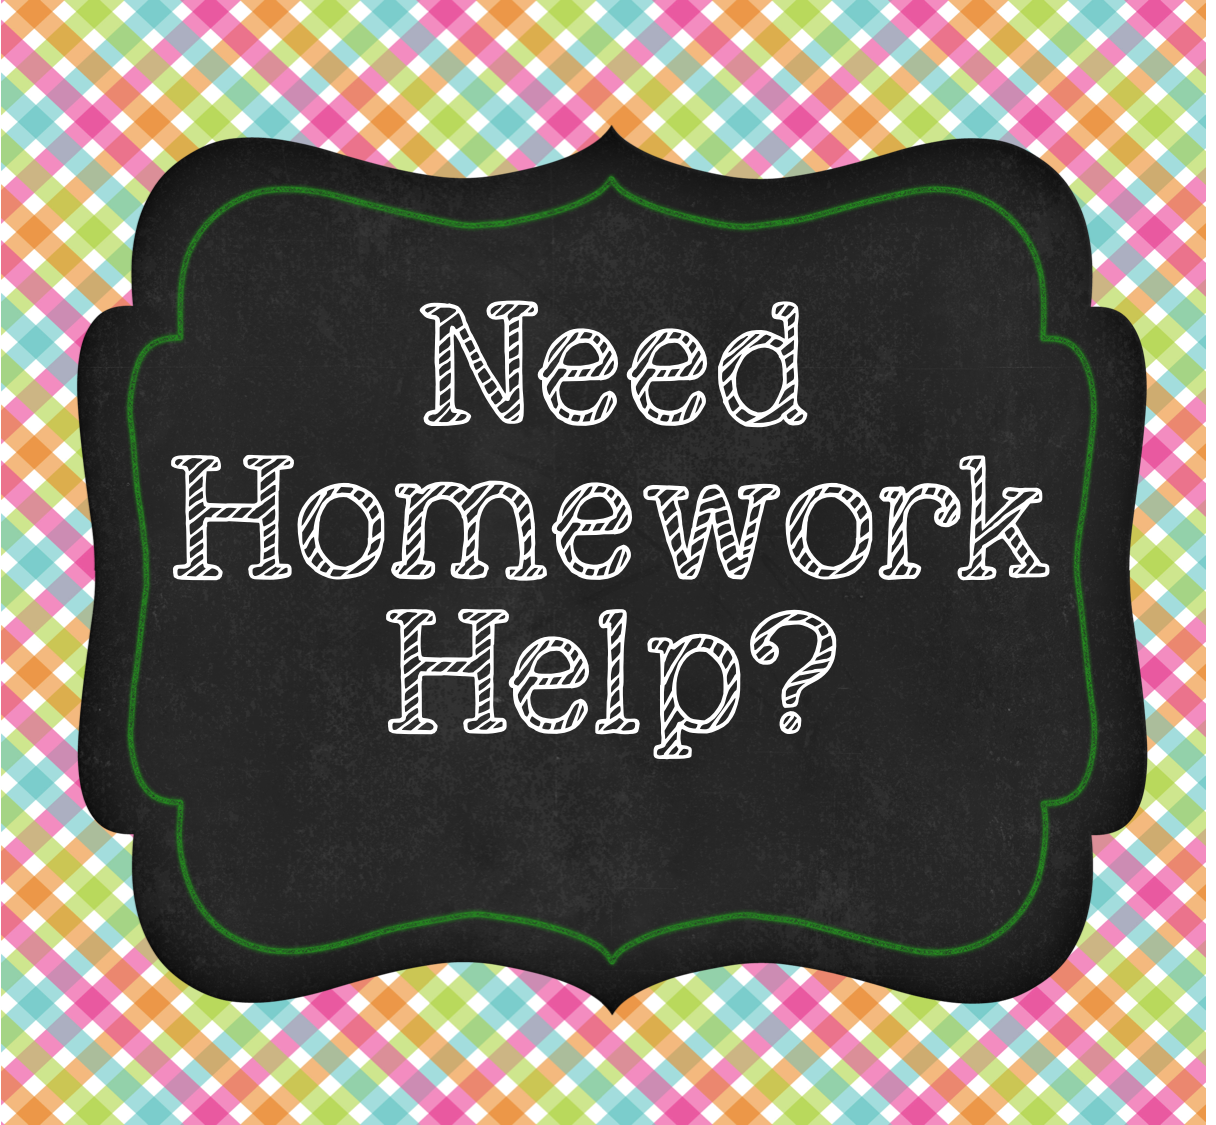 Homework is helpful for students